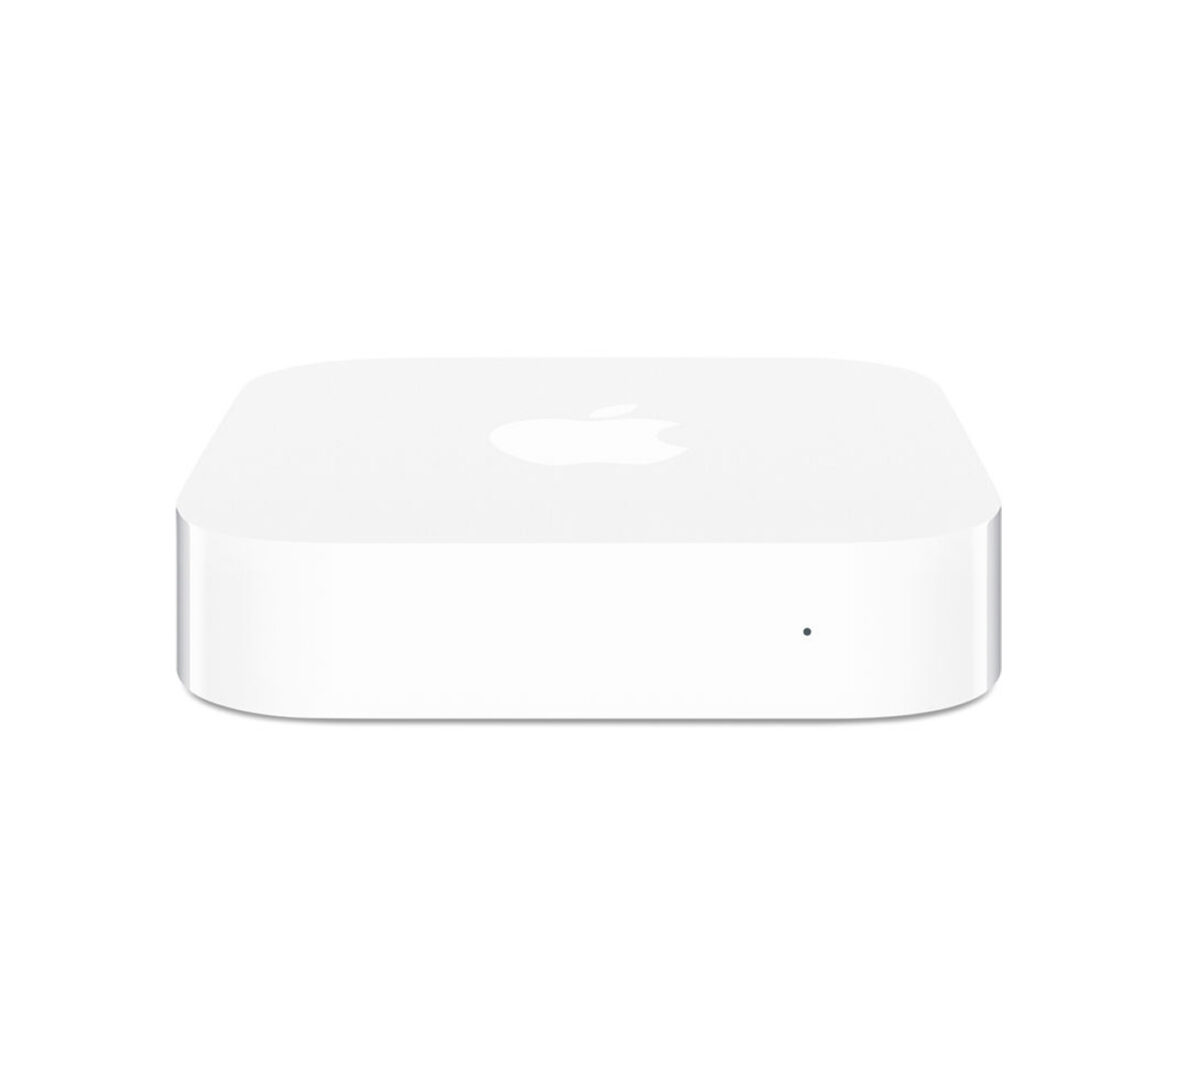 AirPort Express 802.11n 2nd Generation